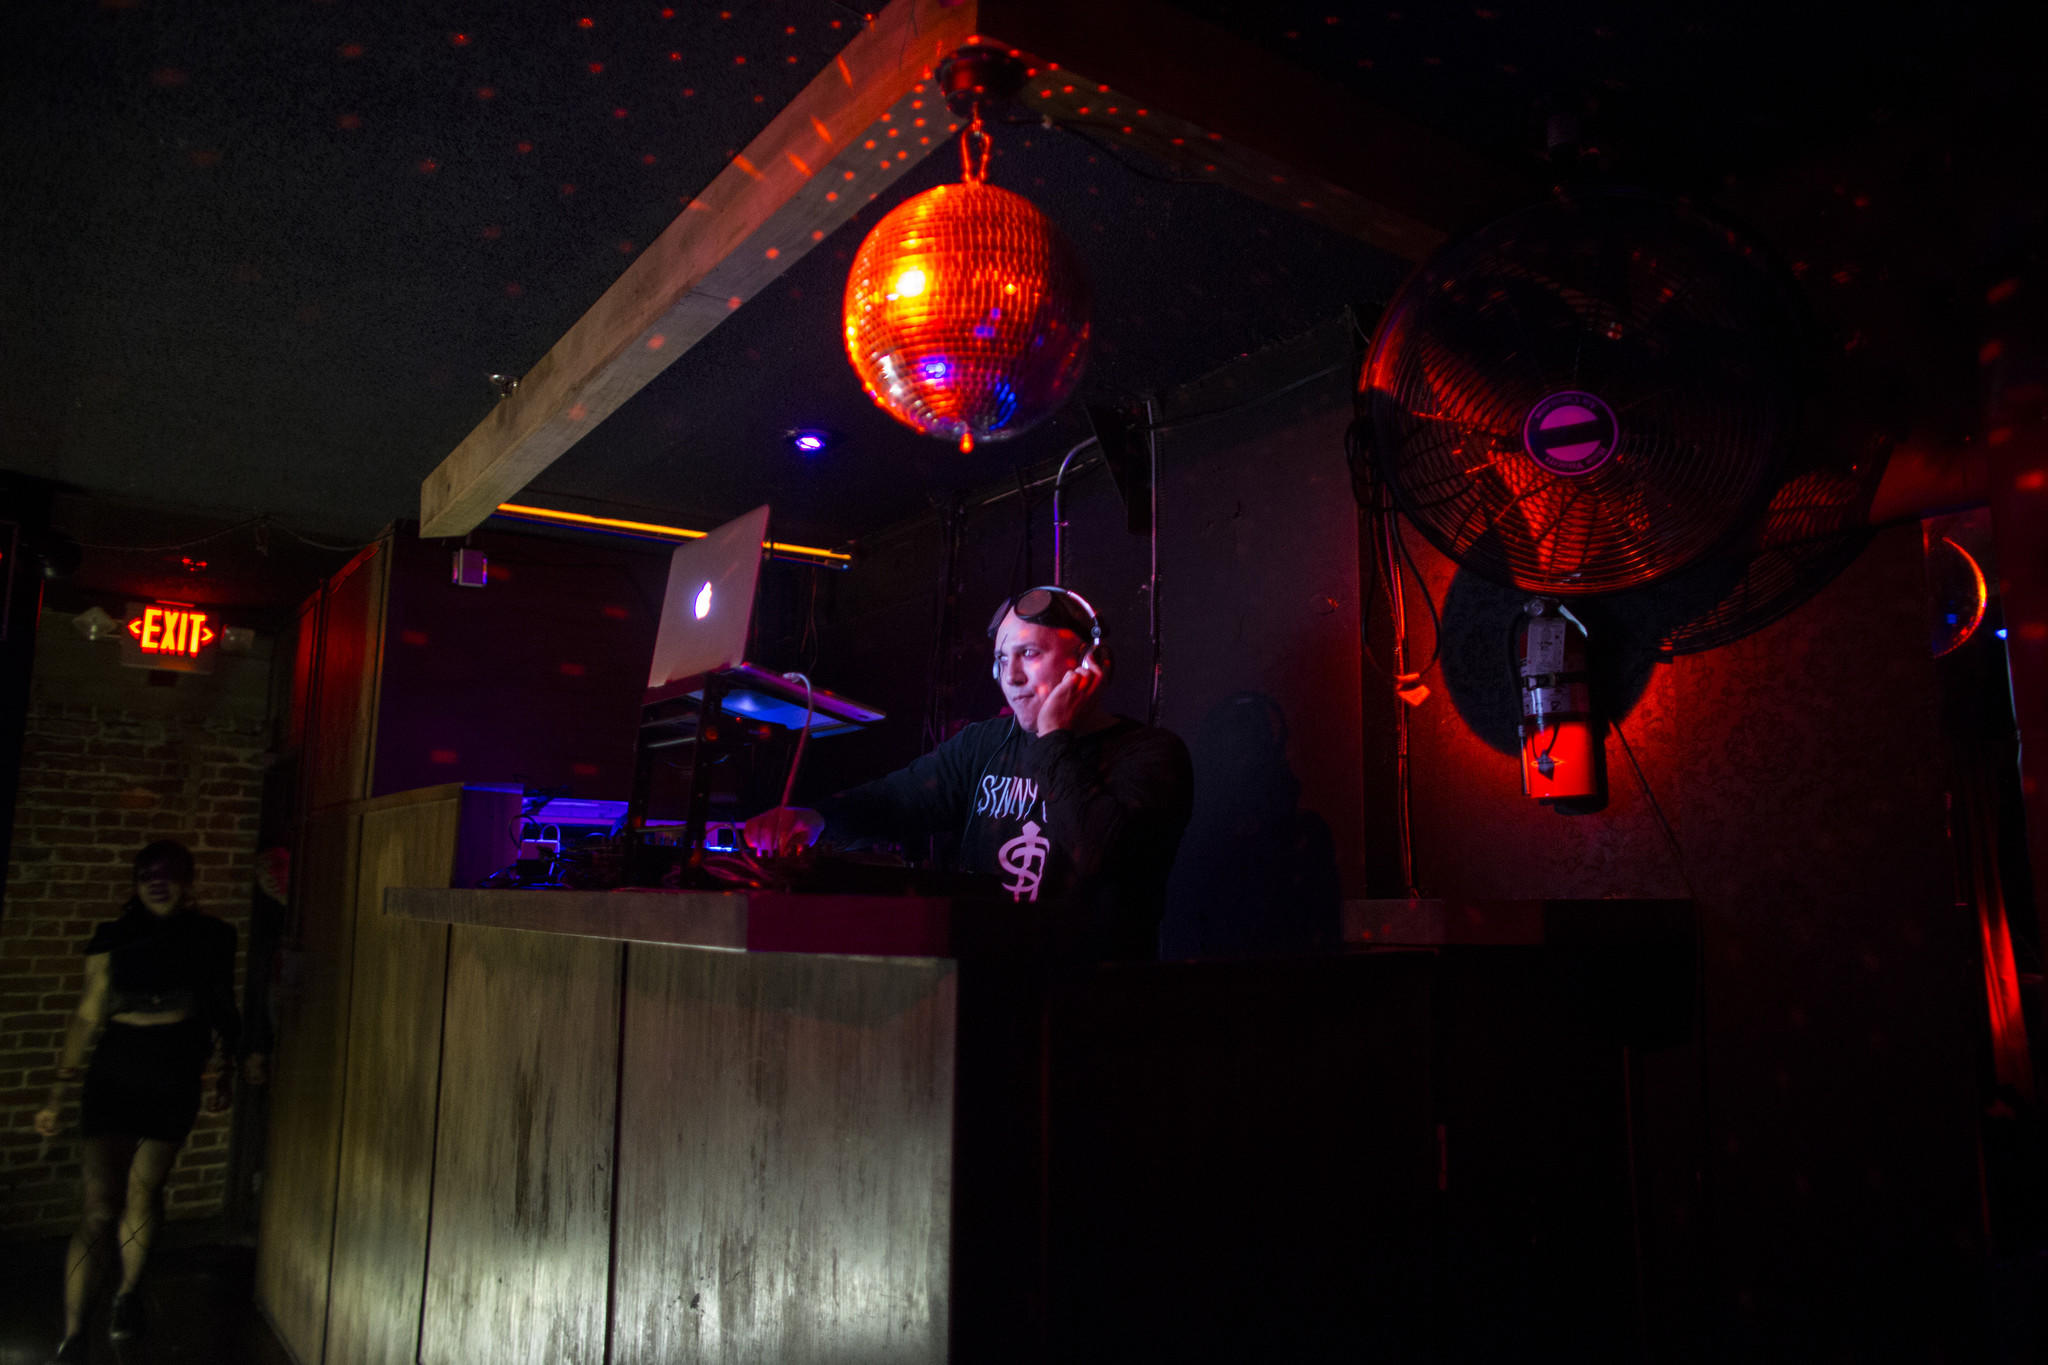 A DJ spins records in between performances on the top level at Los Globos. (Gina Ferazzi / Los Angeles Times)